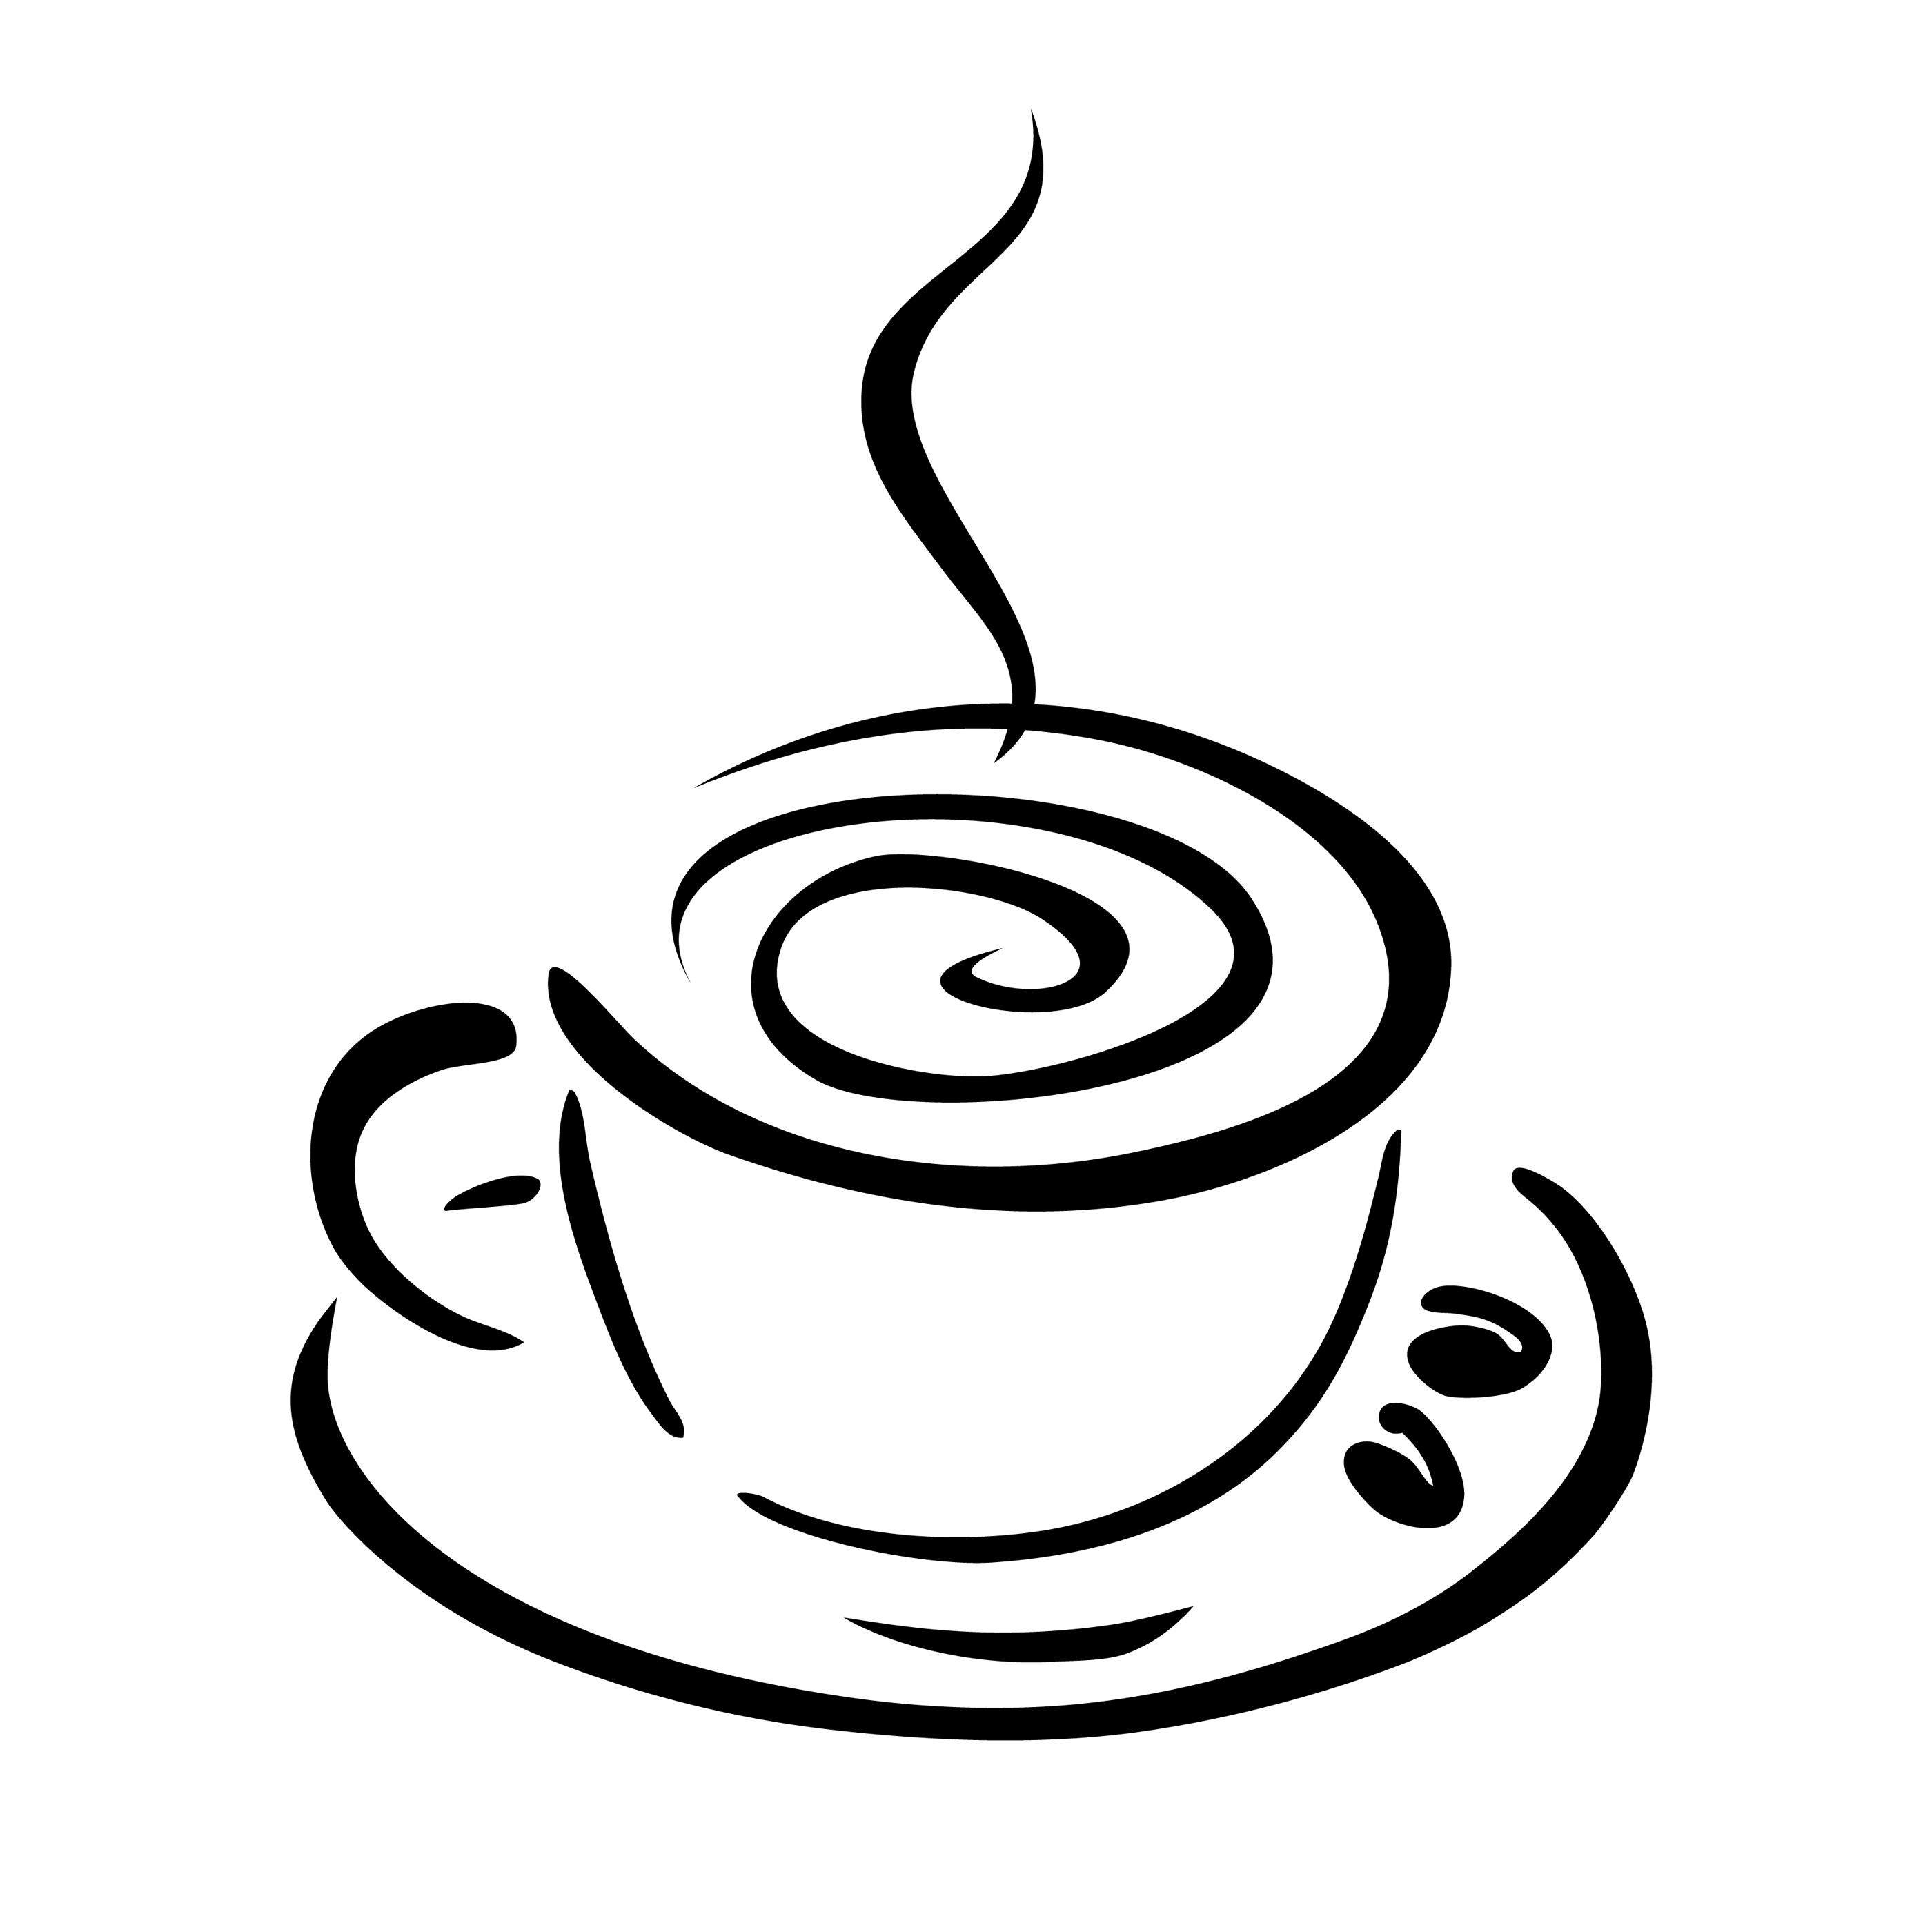 Coffee cup hd cup clip art black of coffee clipart transparent.